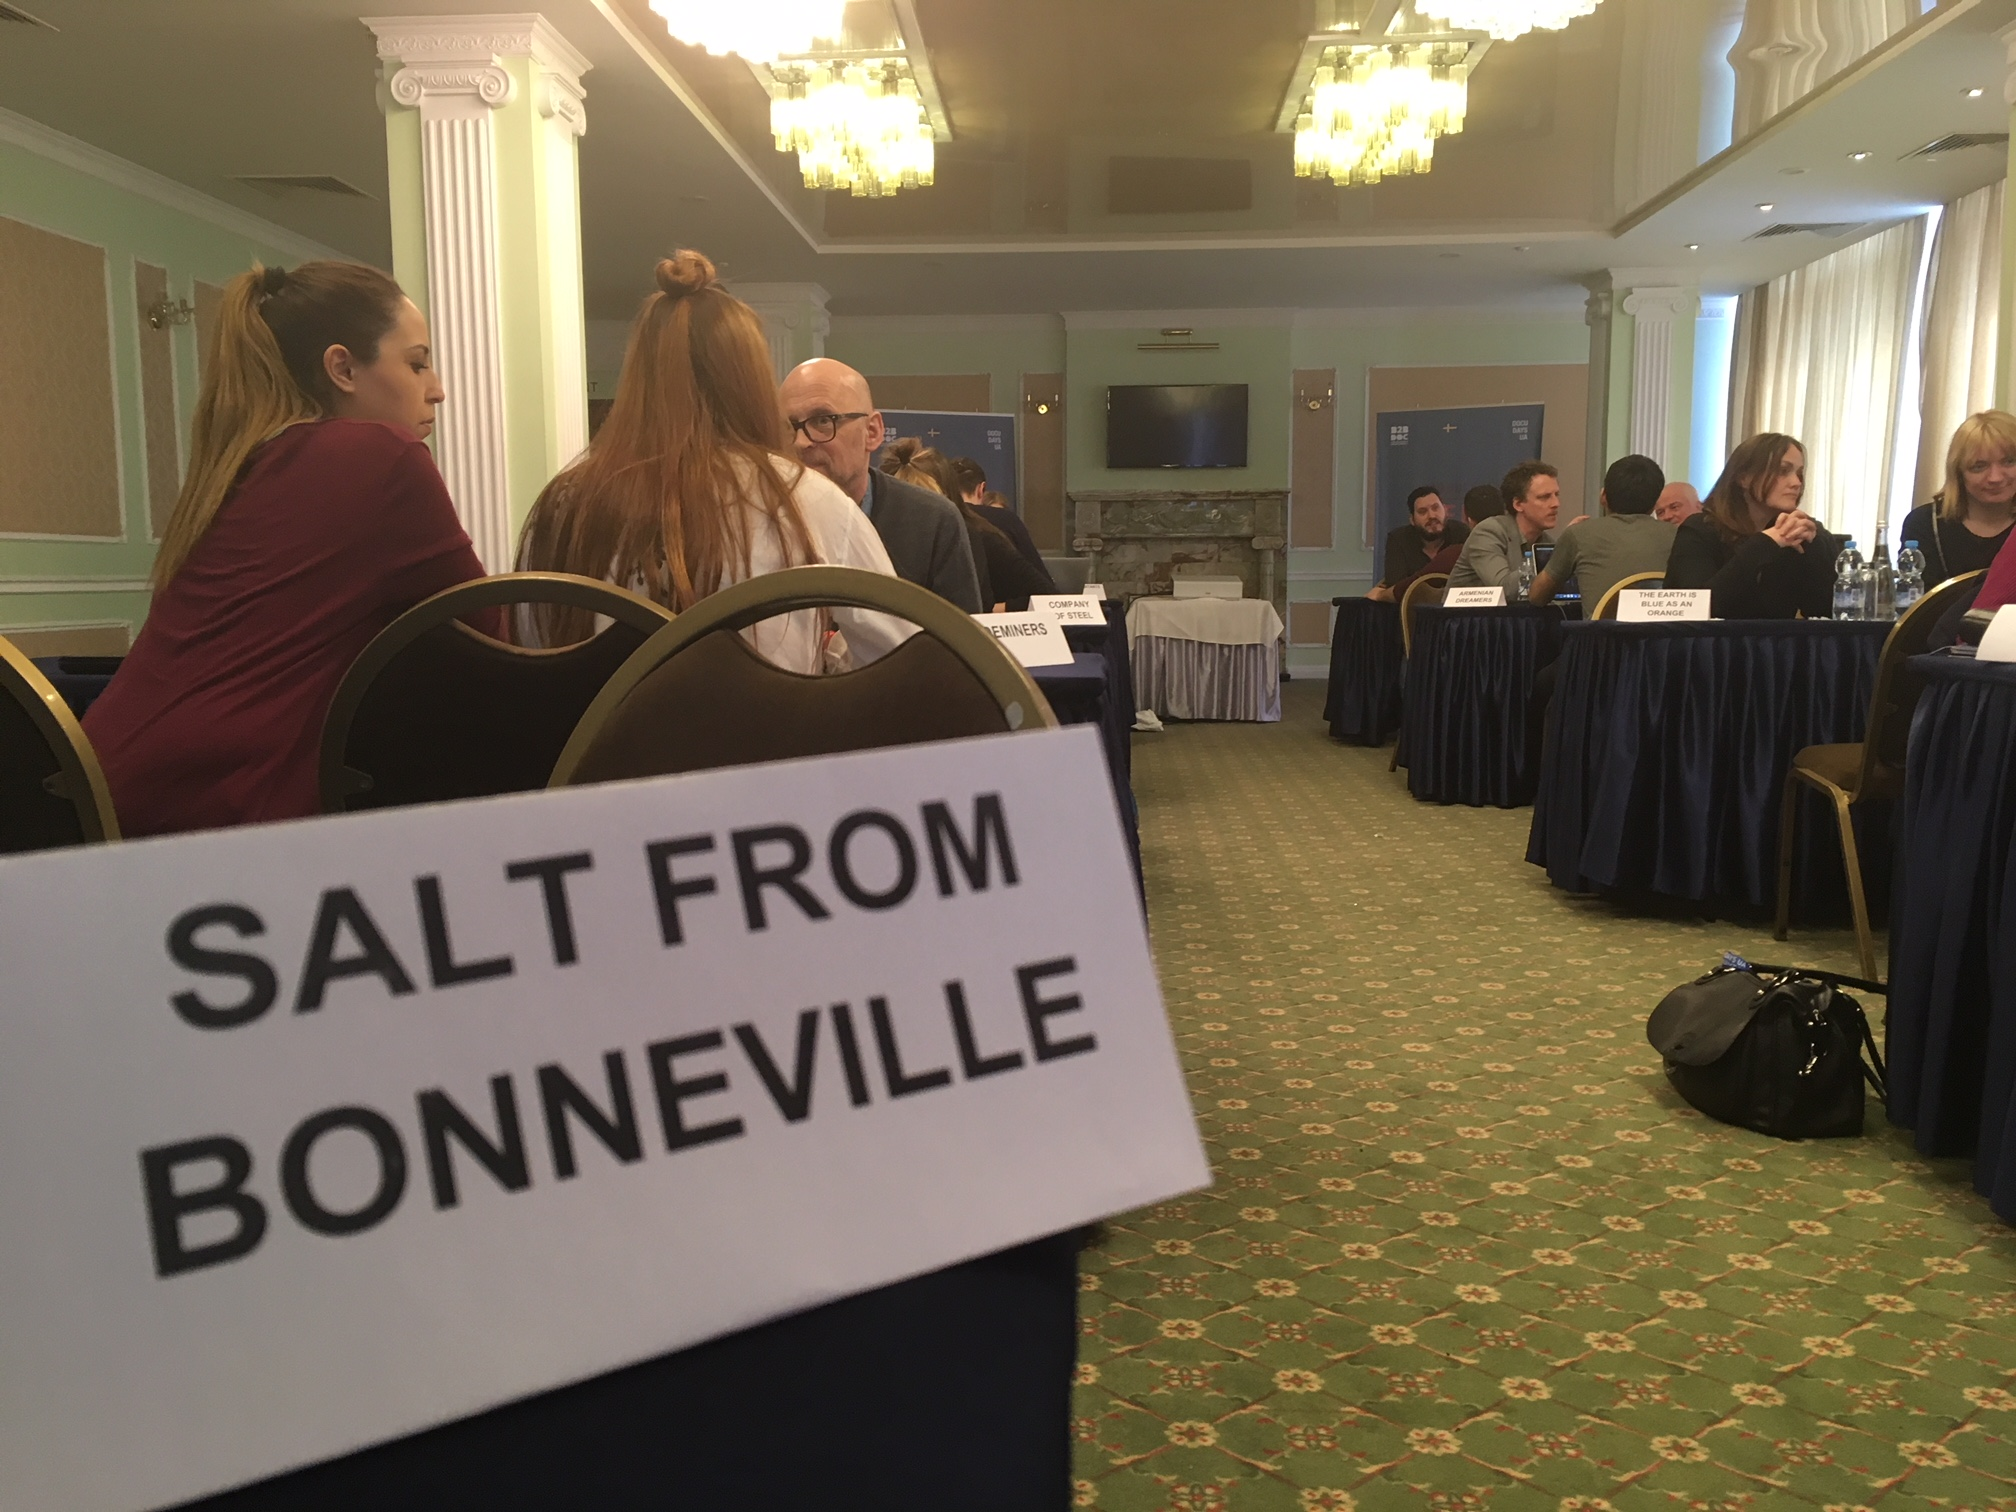 Salt from Bonneville was selected for Docudays pitching